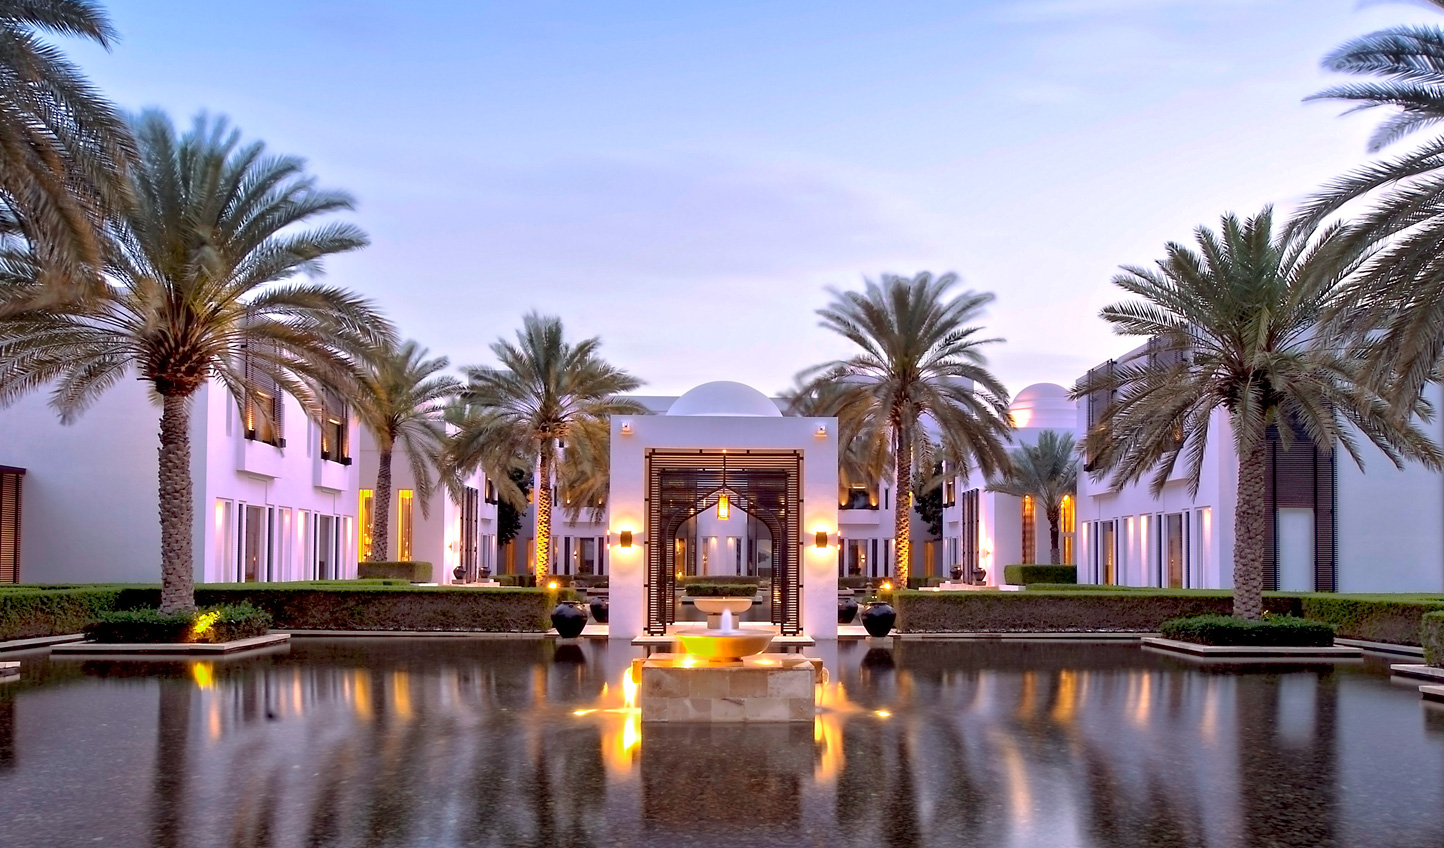 Spend a few days in blissed out luxury at The Chedi